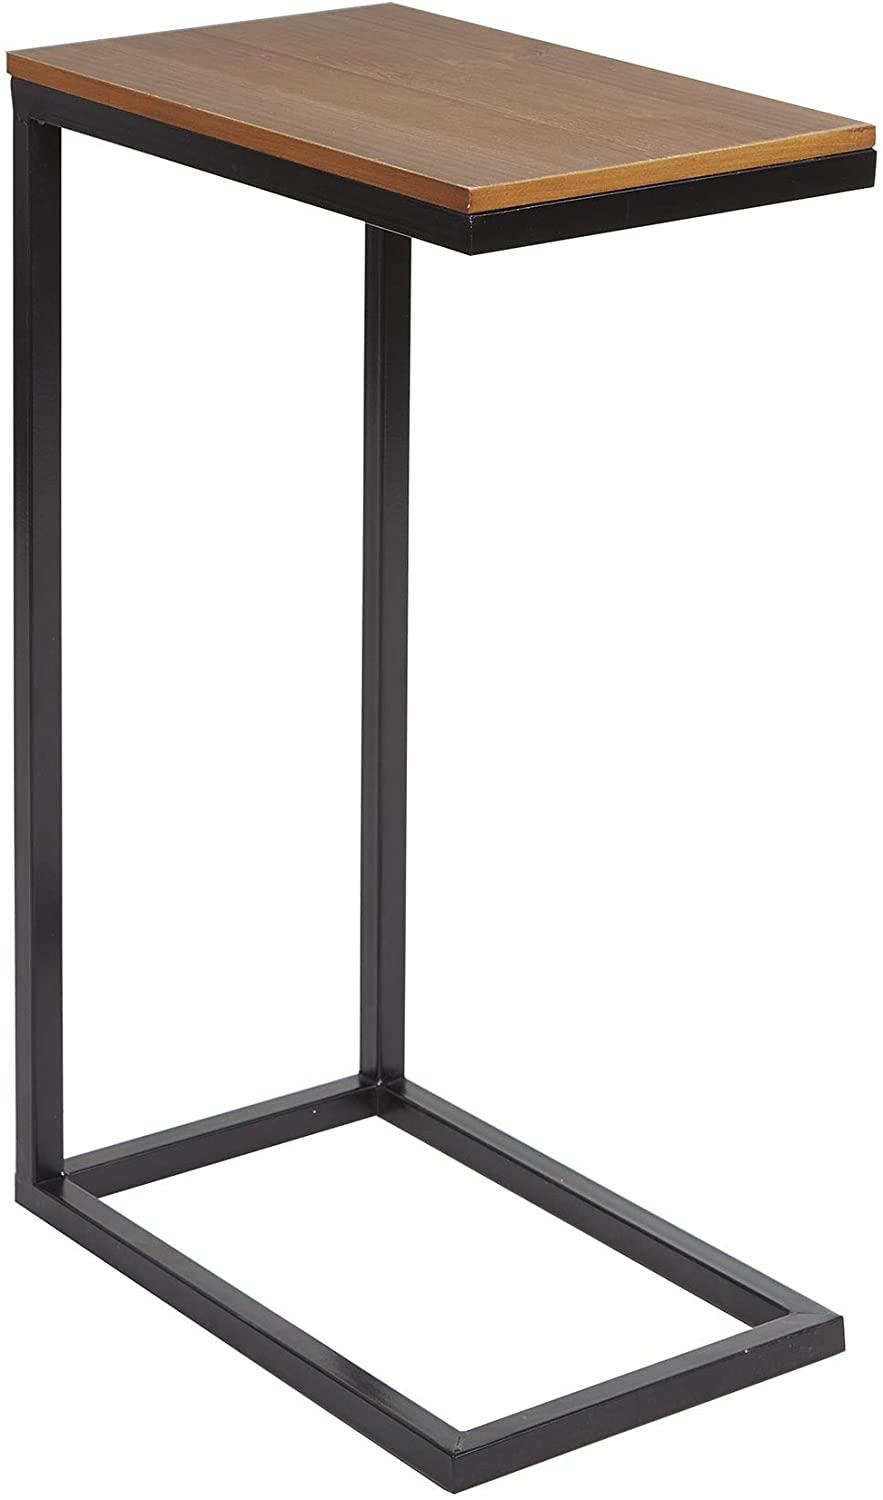 Silverwood Side Table, Black and wood